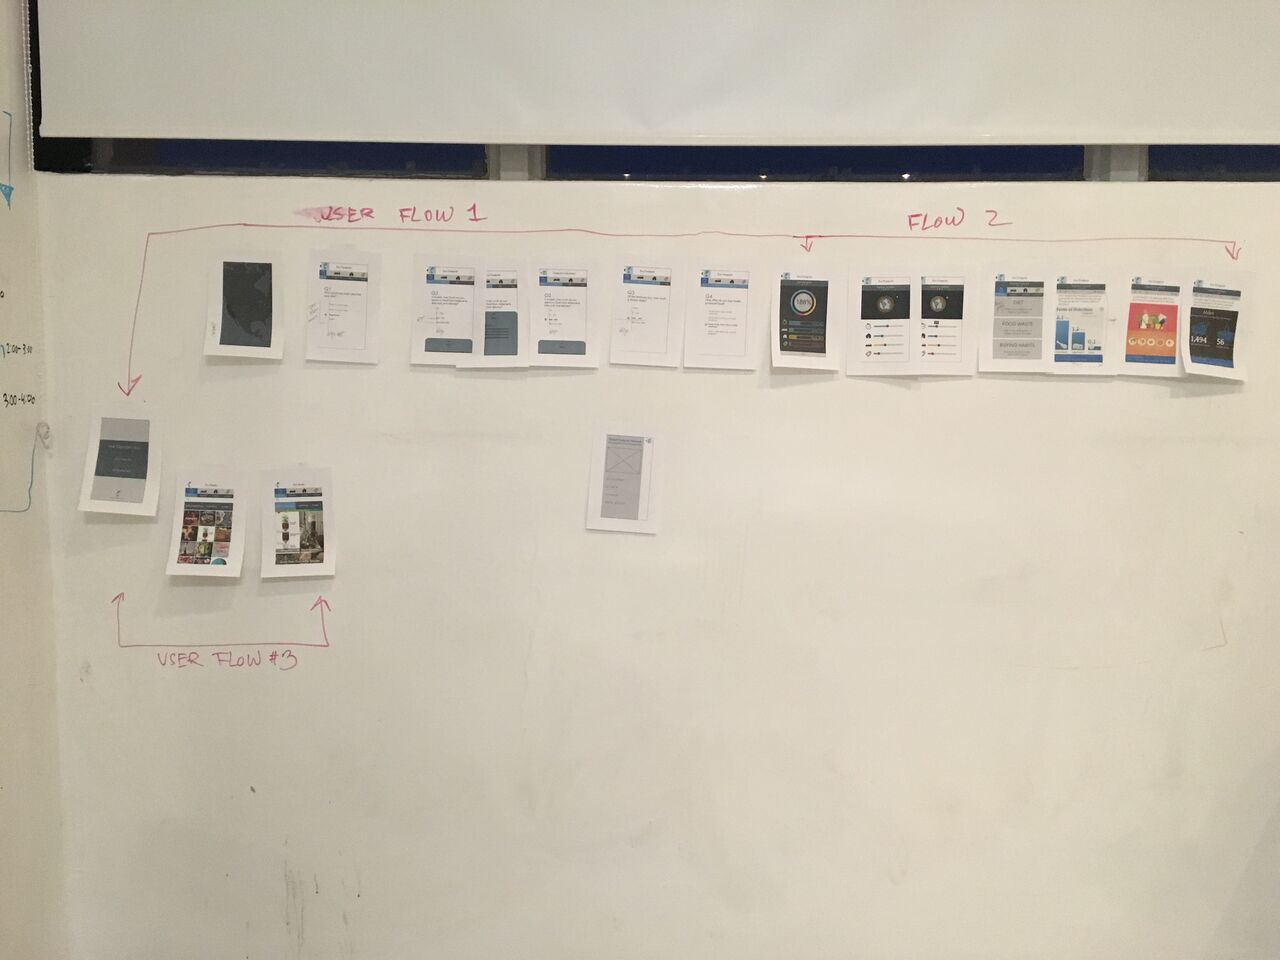 3nd Iteration, User Flow Paper Prototype